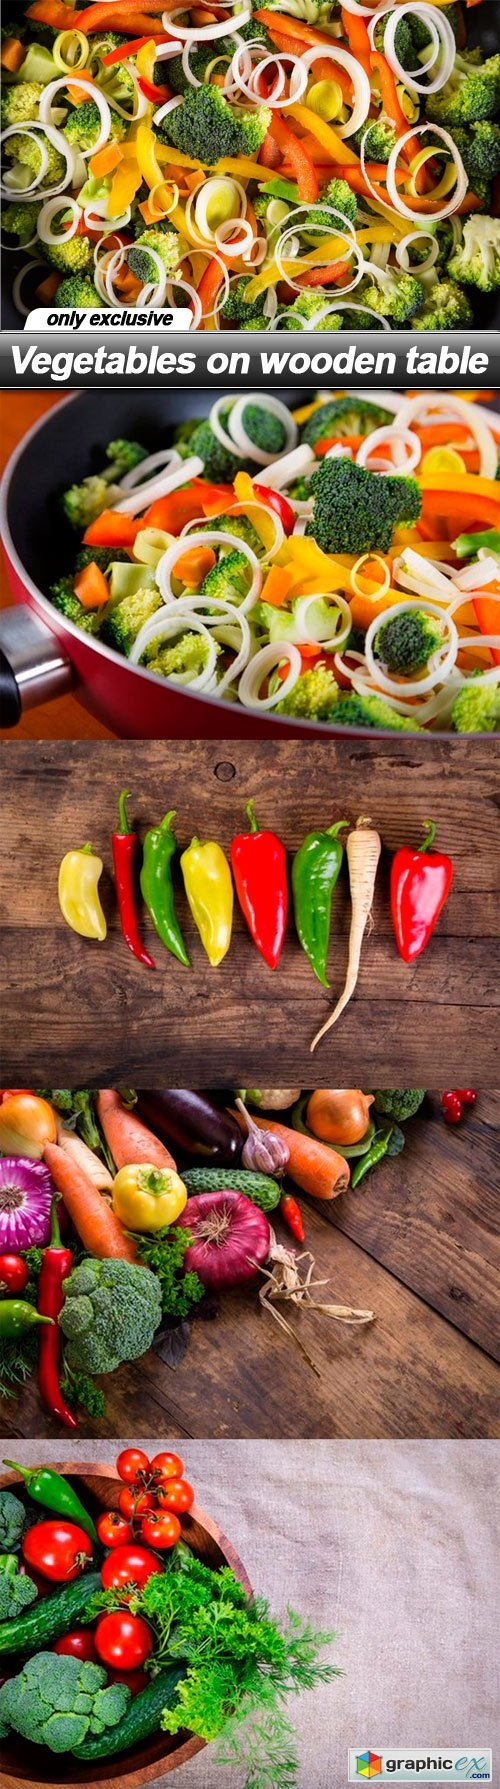 Vegetables on wooden table - 5 UHQ JPEG